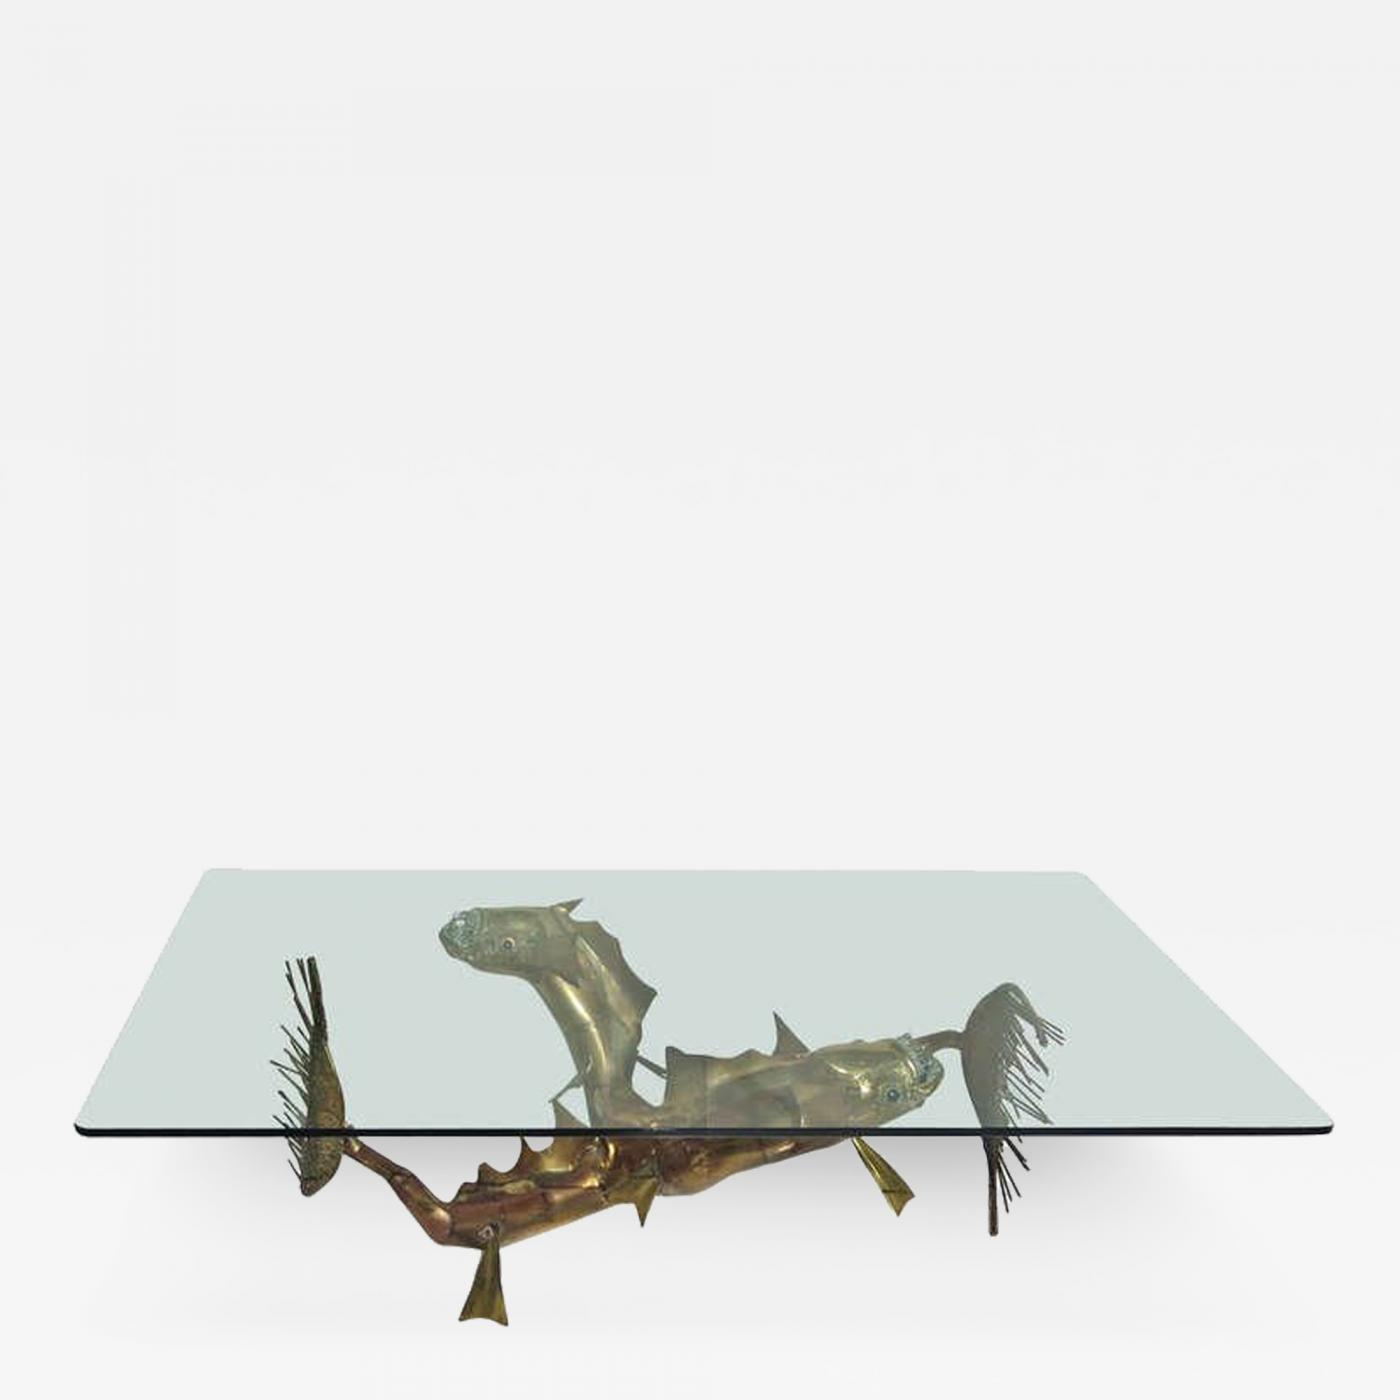 Christian Techoueyres Hand Formed Sea Creature Coffee Table by